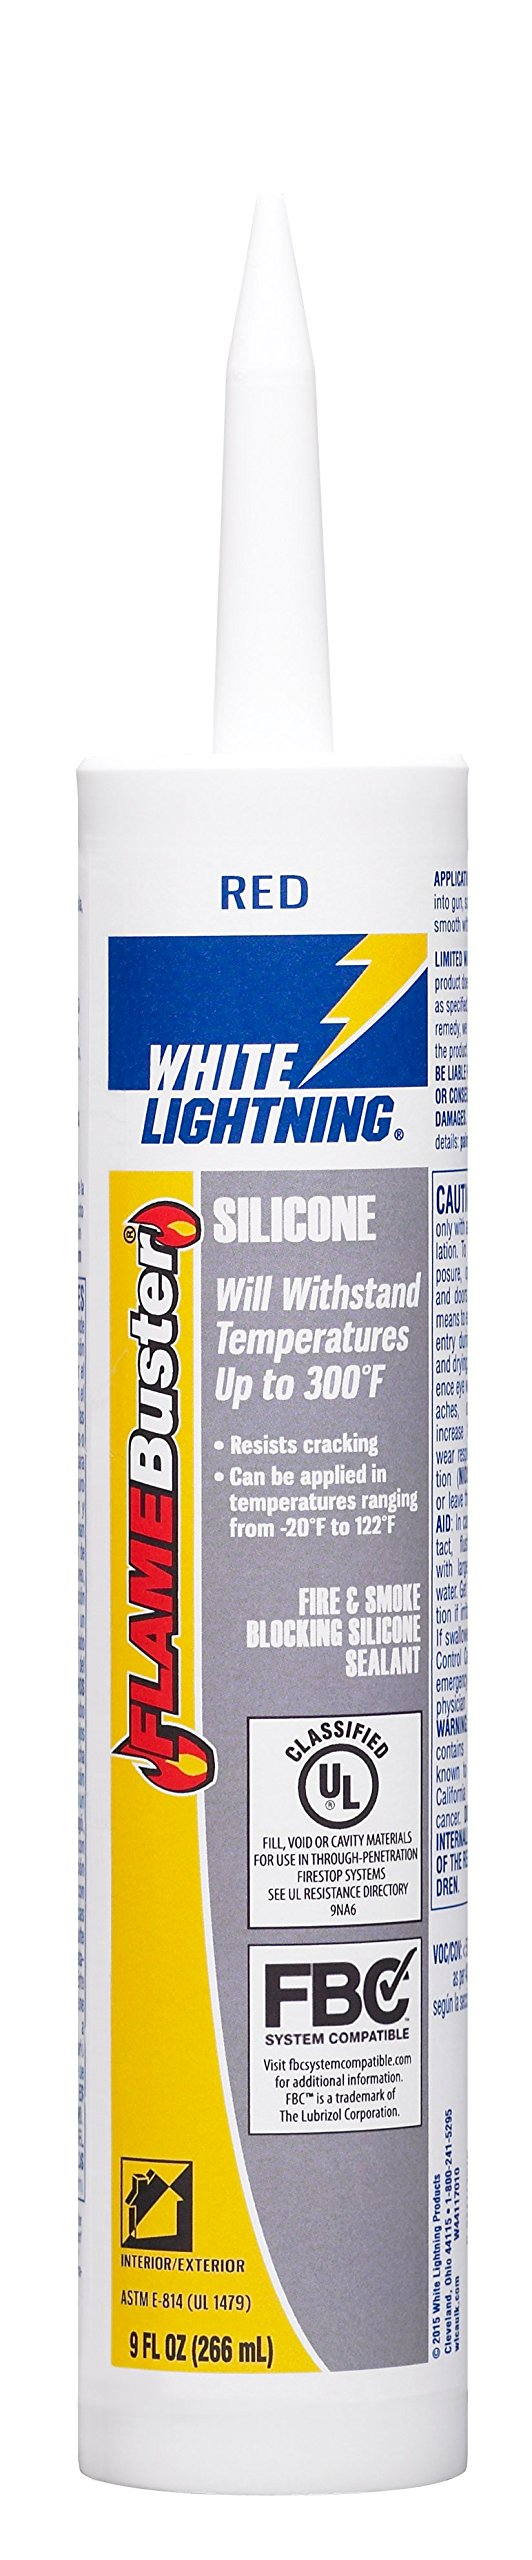 White Lightning W44117010 Flame Buster Fire and Smoke Blocking-Silicone Sealant.